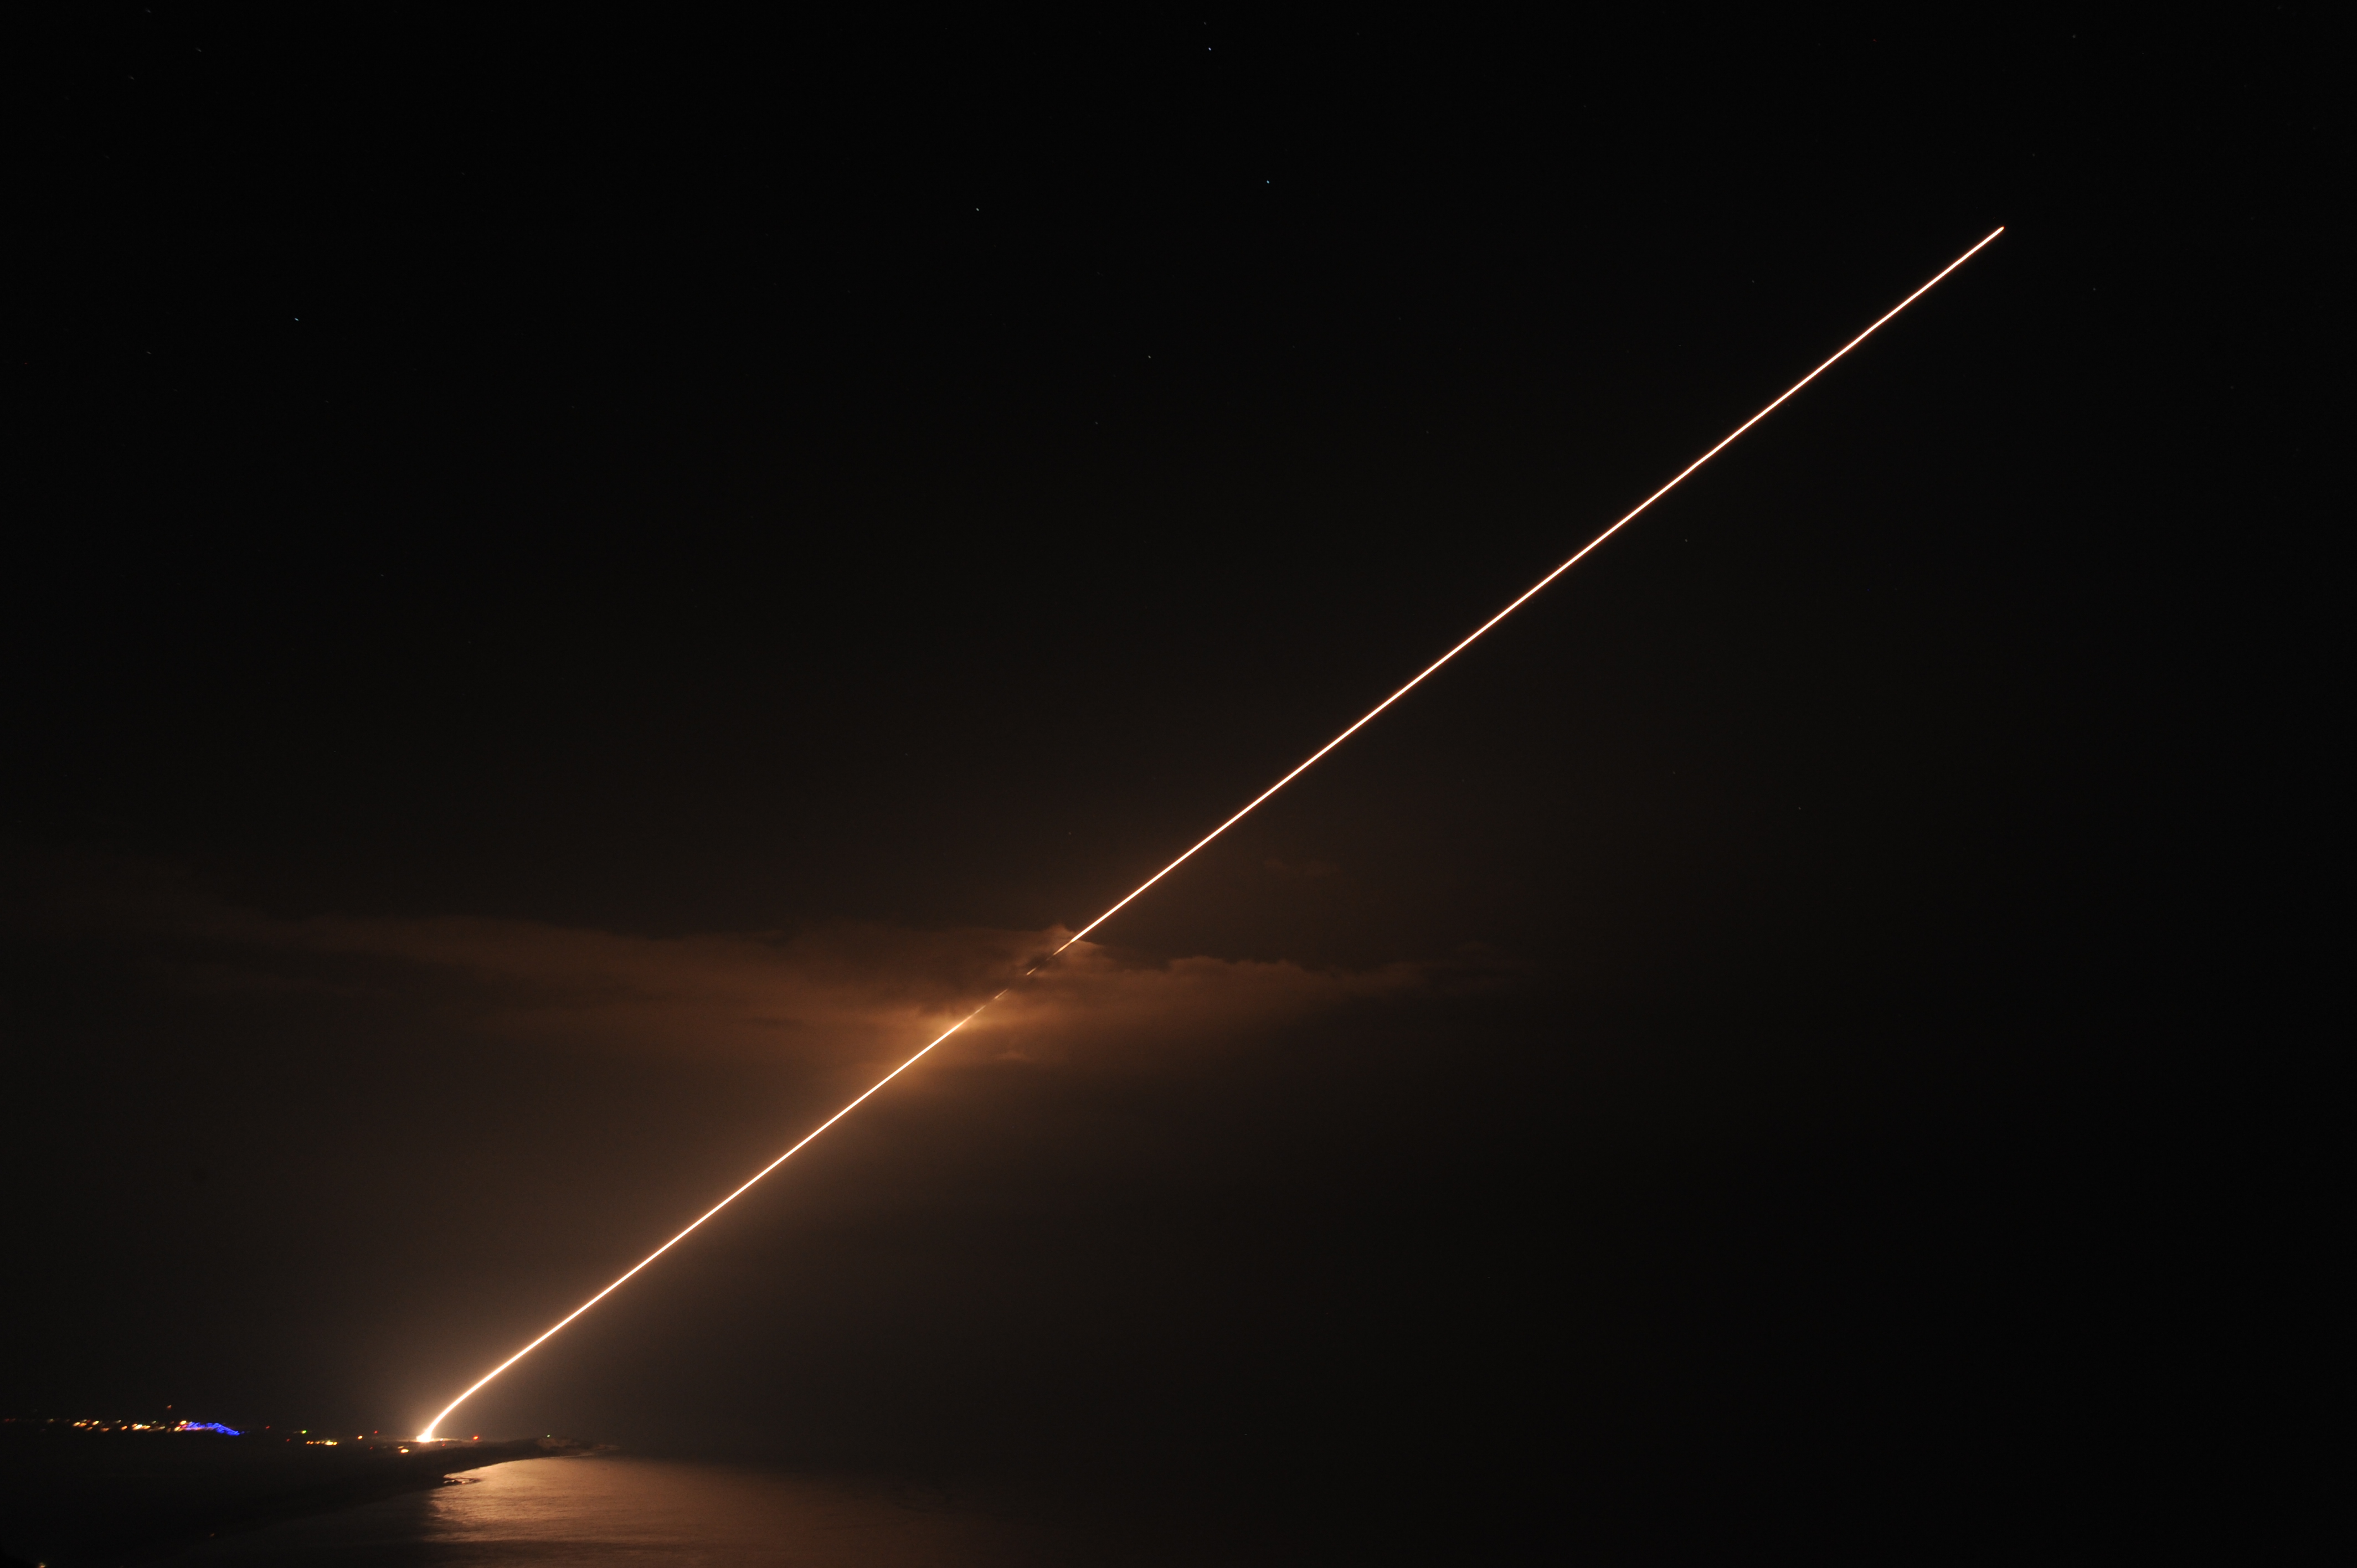 A Terminal High Altitude Area Defense system being fired at night.